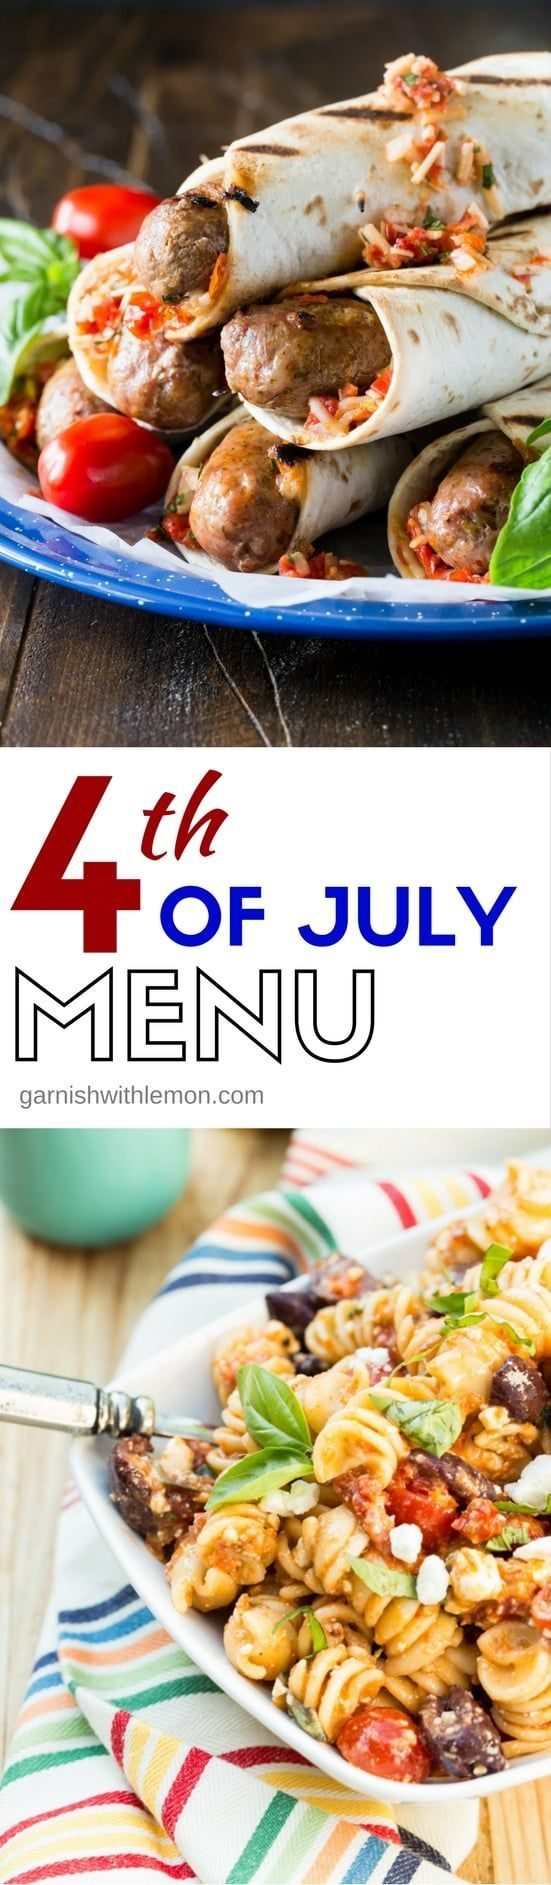 This 4th of July Menu is loaded with make-ahead recipes so you can relax and soak in the sights and sounds of the long holiday weekend, too.